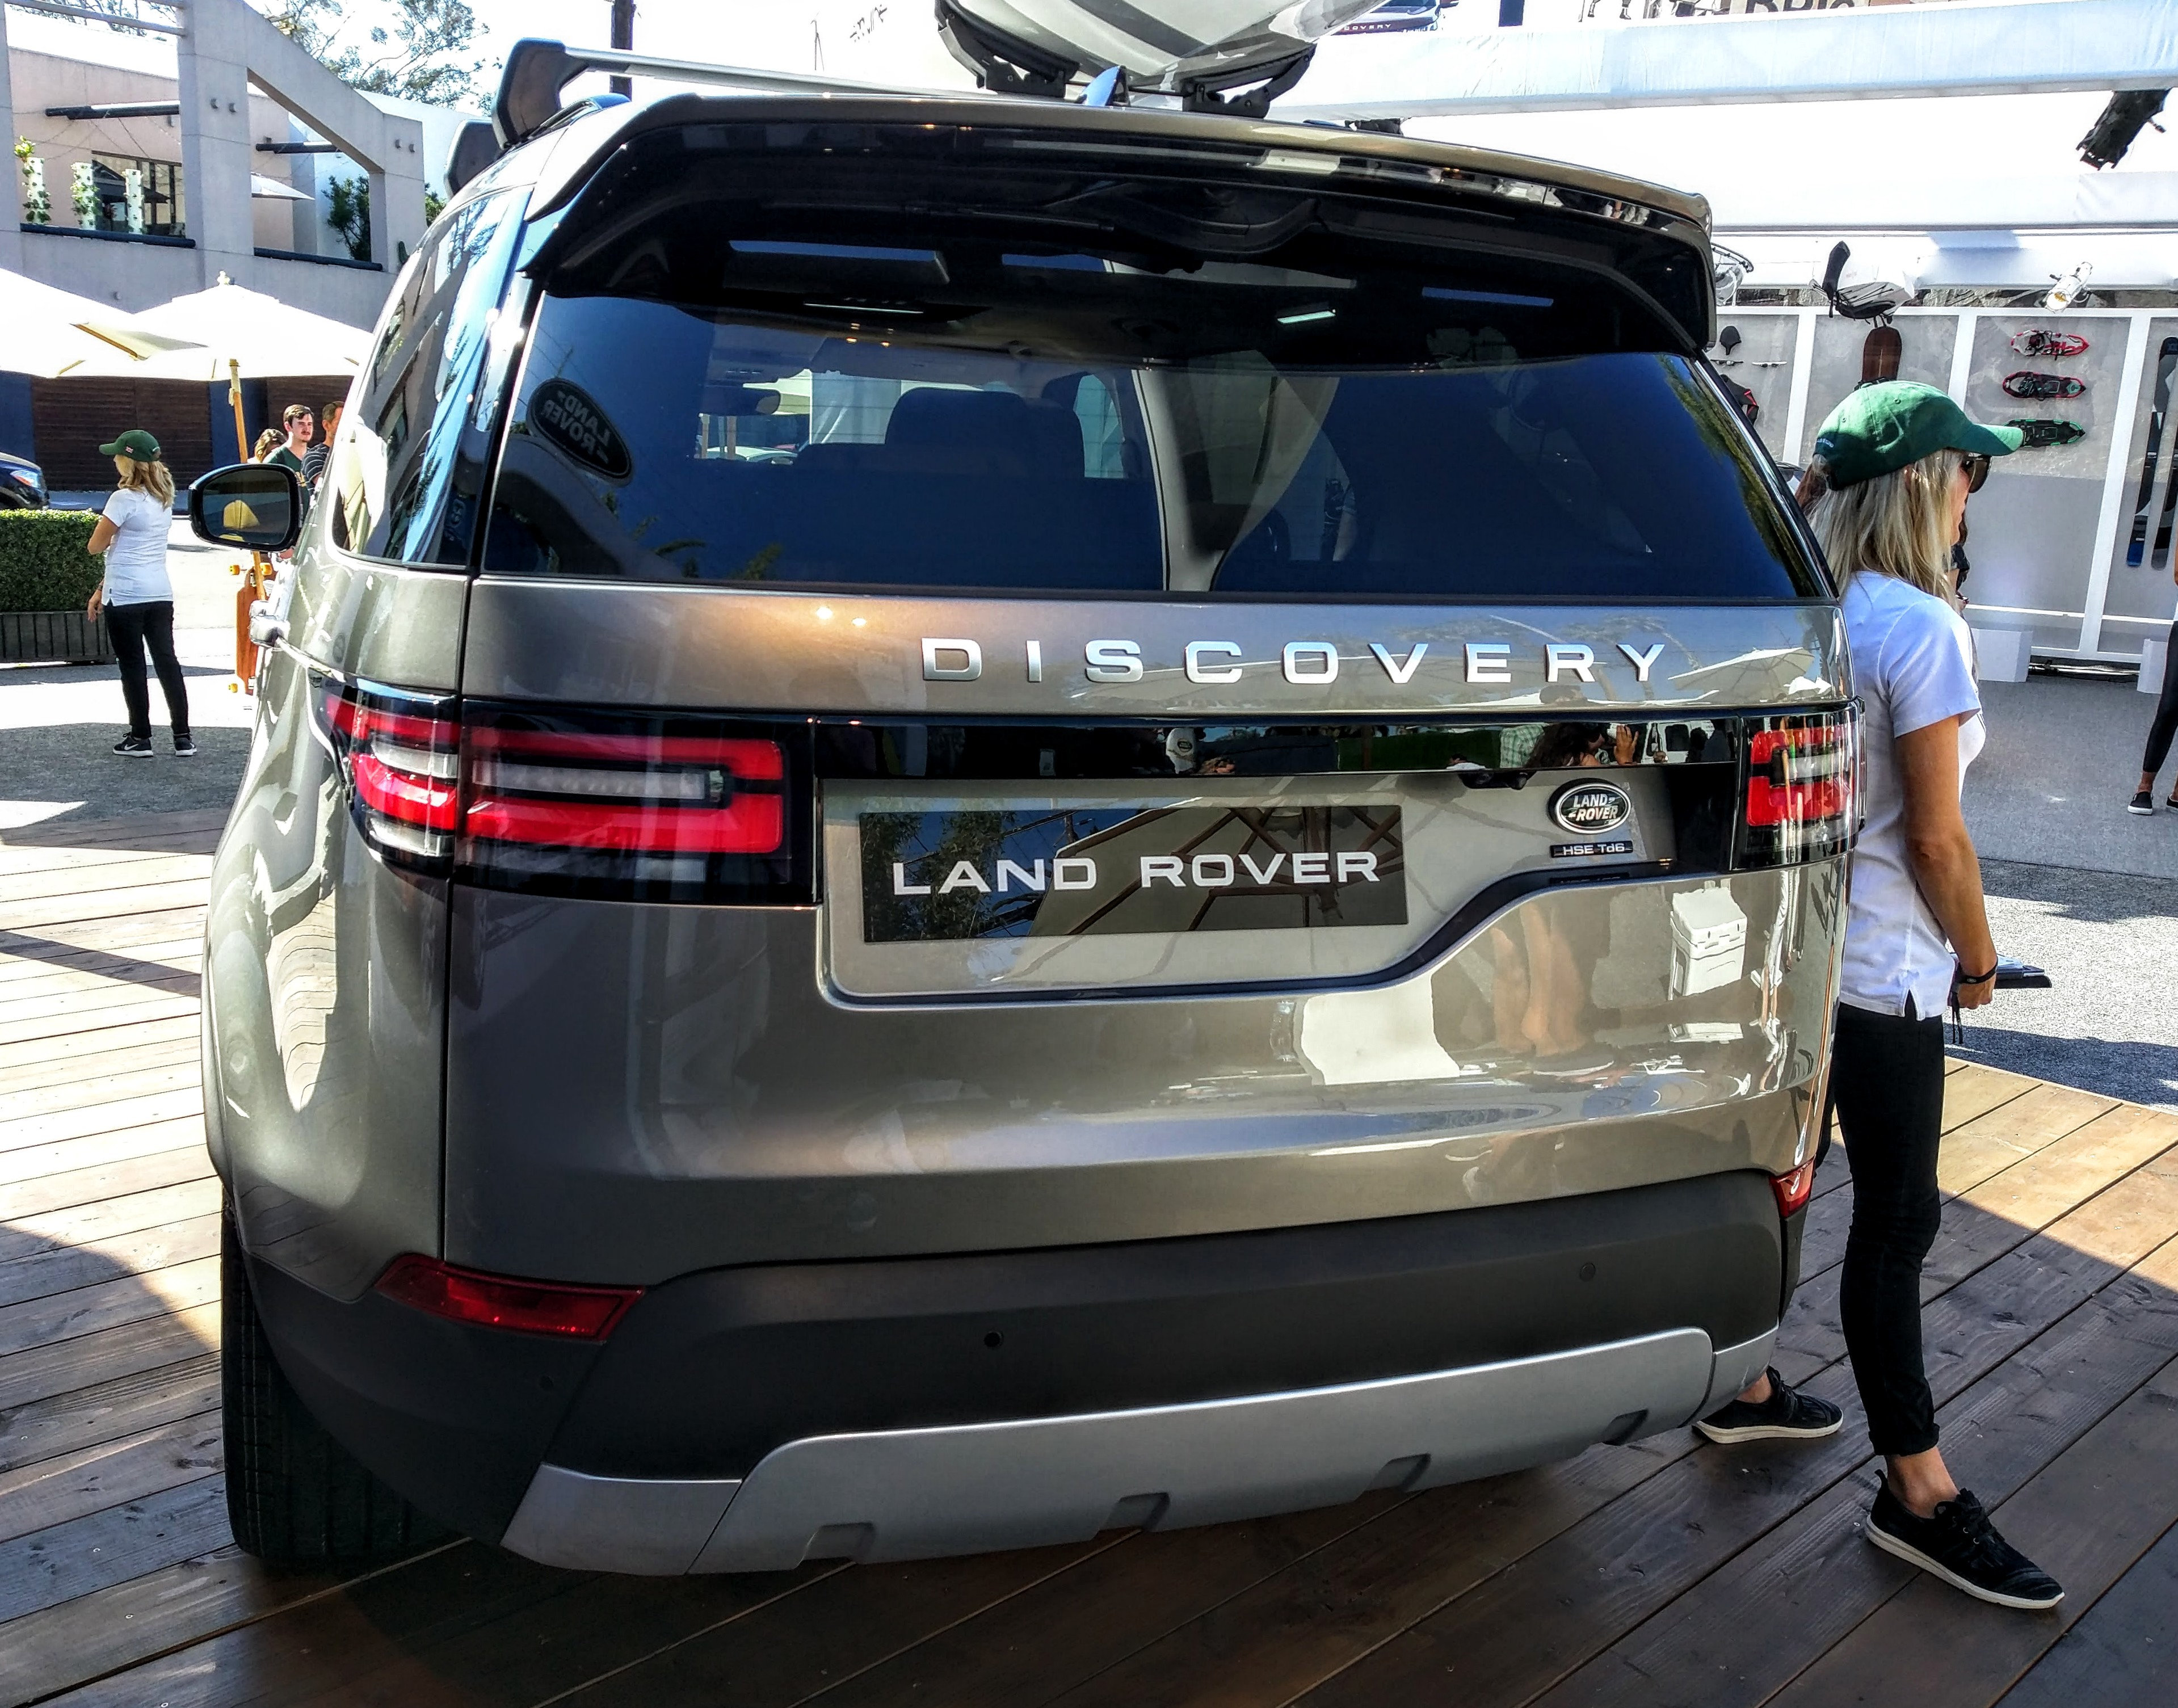 california welcomes the new land rover discovery the ignition blog. Black Bedroom Furniture Sets. Home Design Ideas